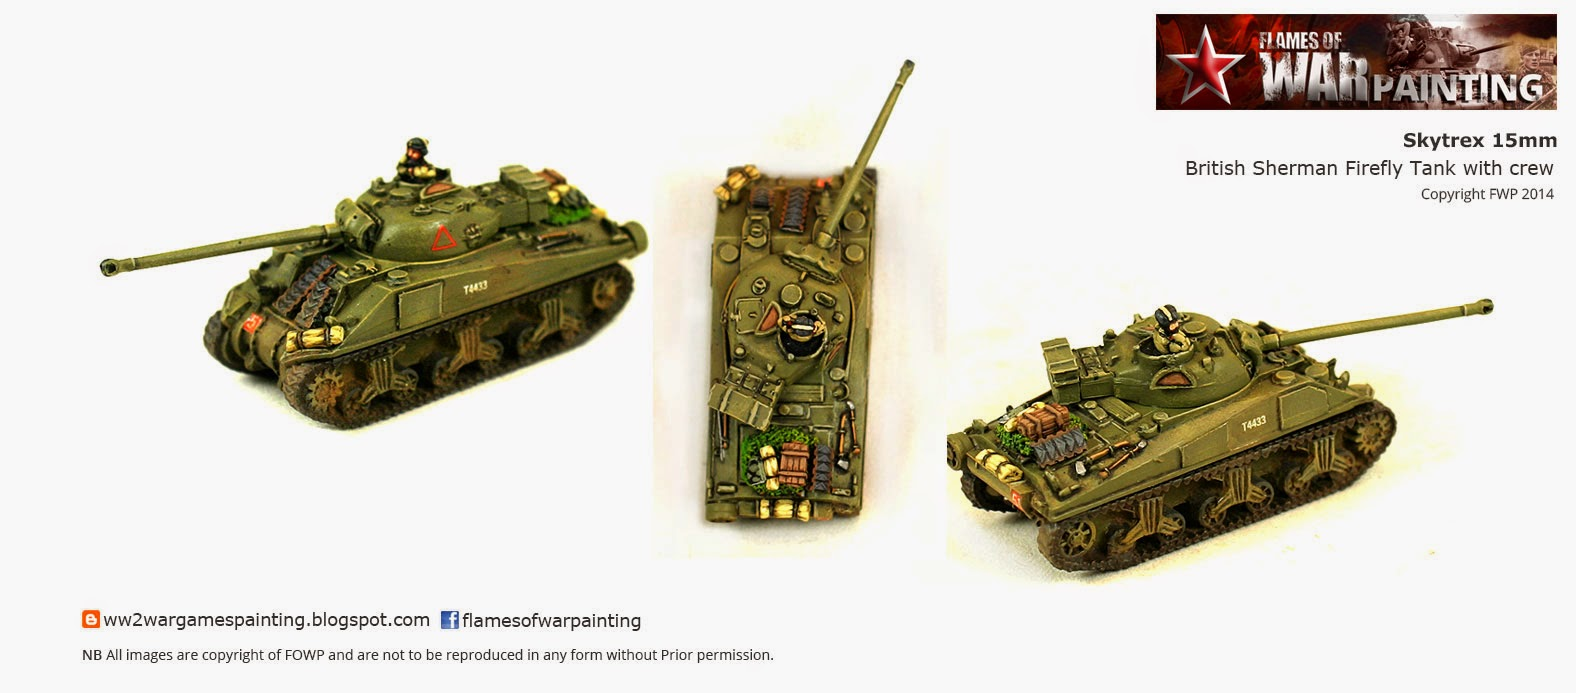 15mm British Sherman Fire fly Tank from SkyTrex with crew using ST stowage accessories.